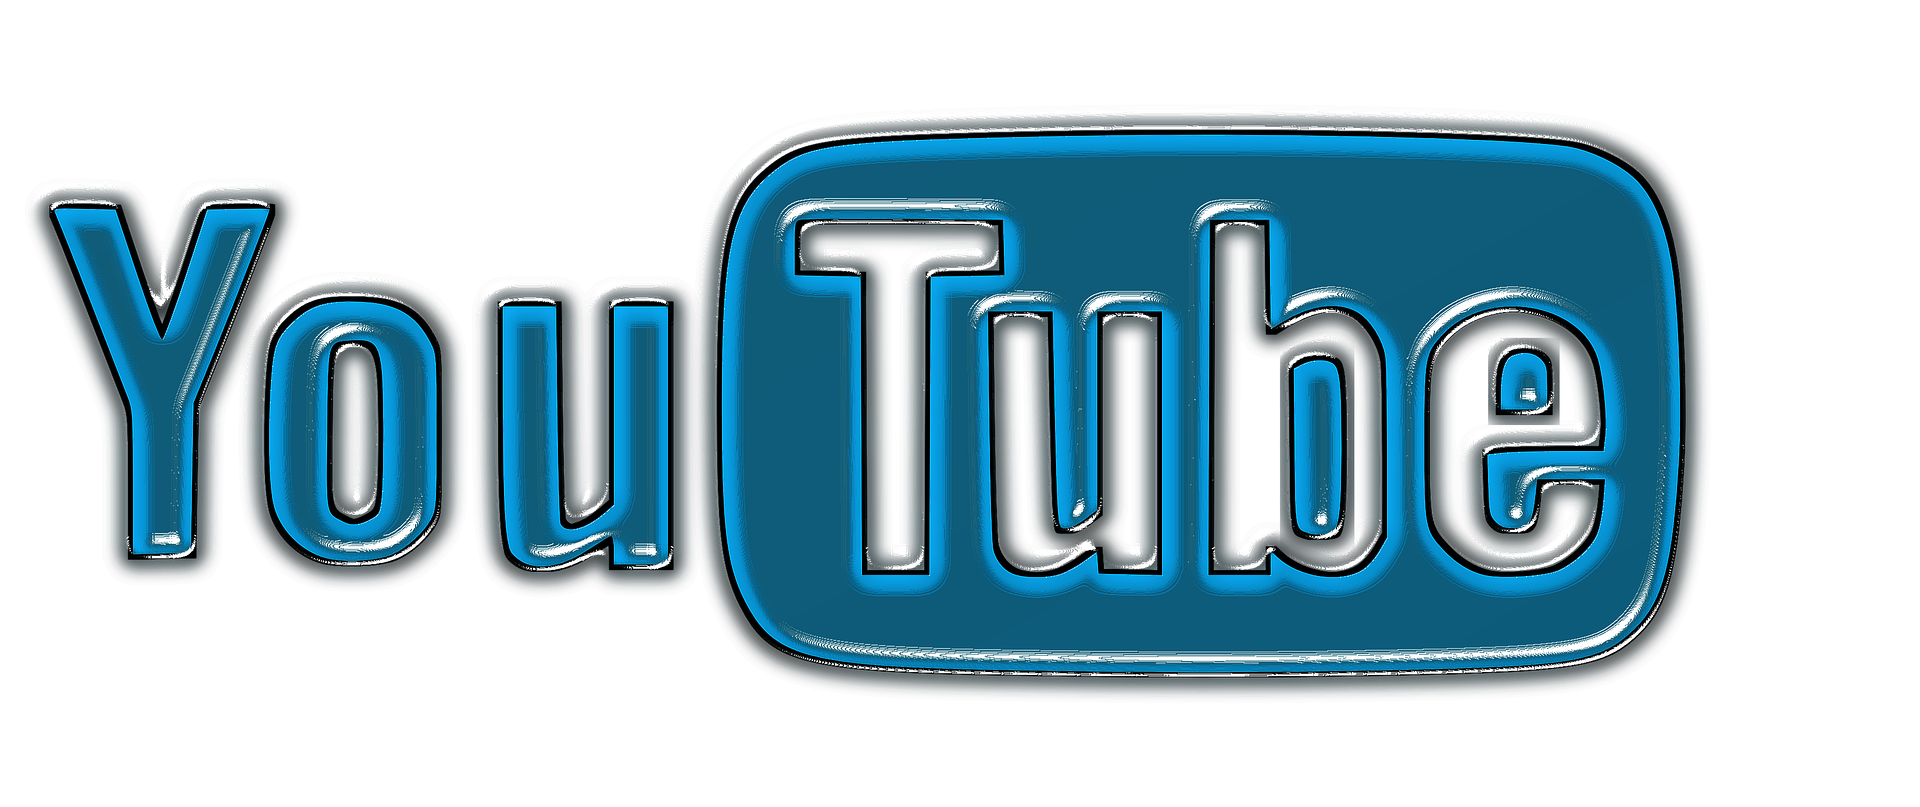 Redes Sociales - YouTube